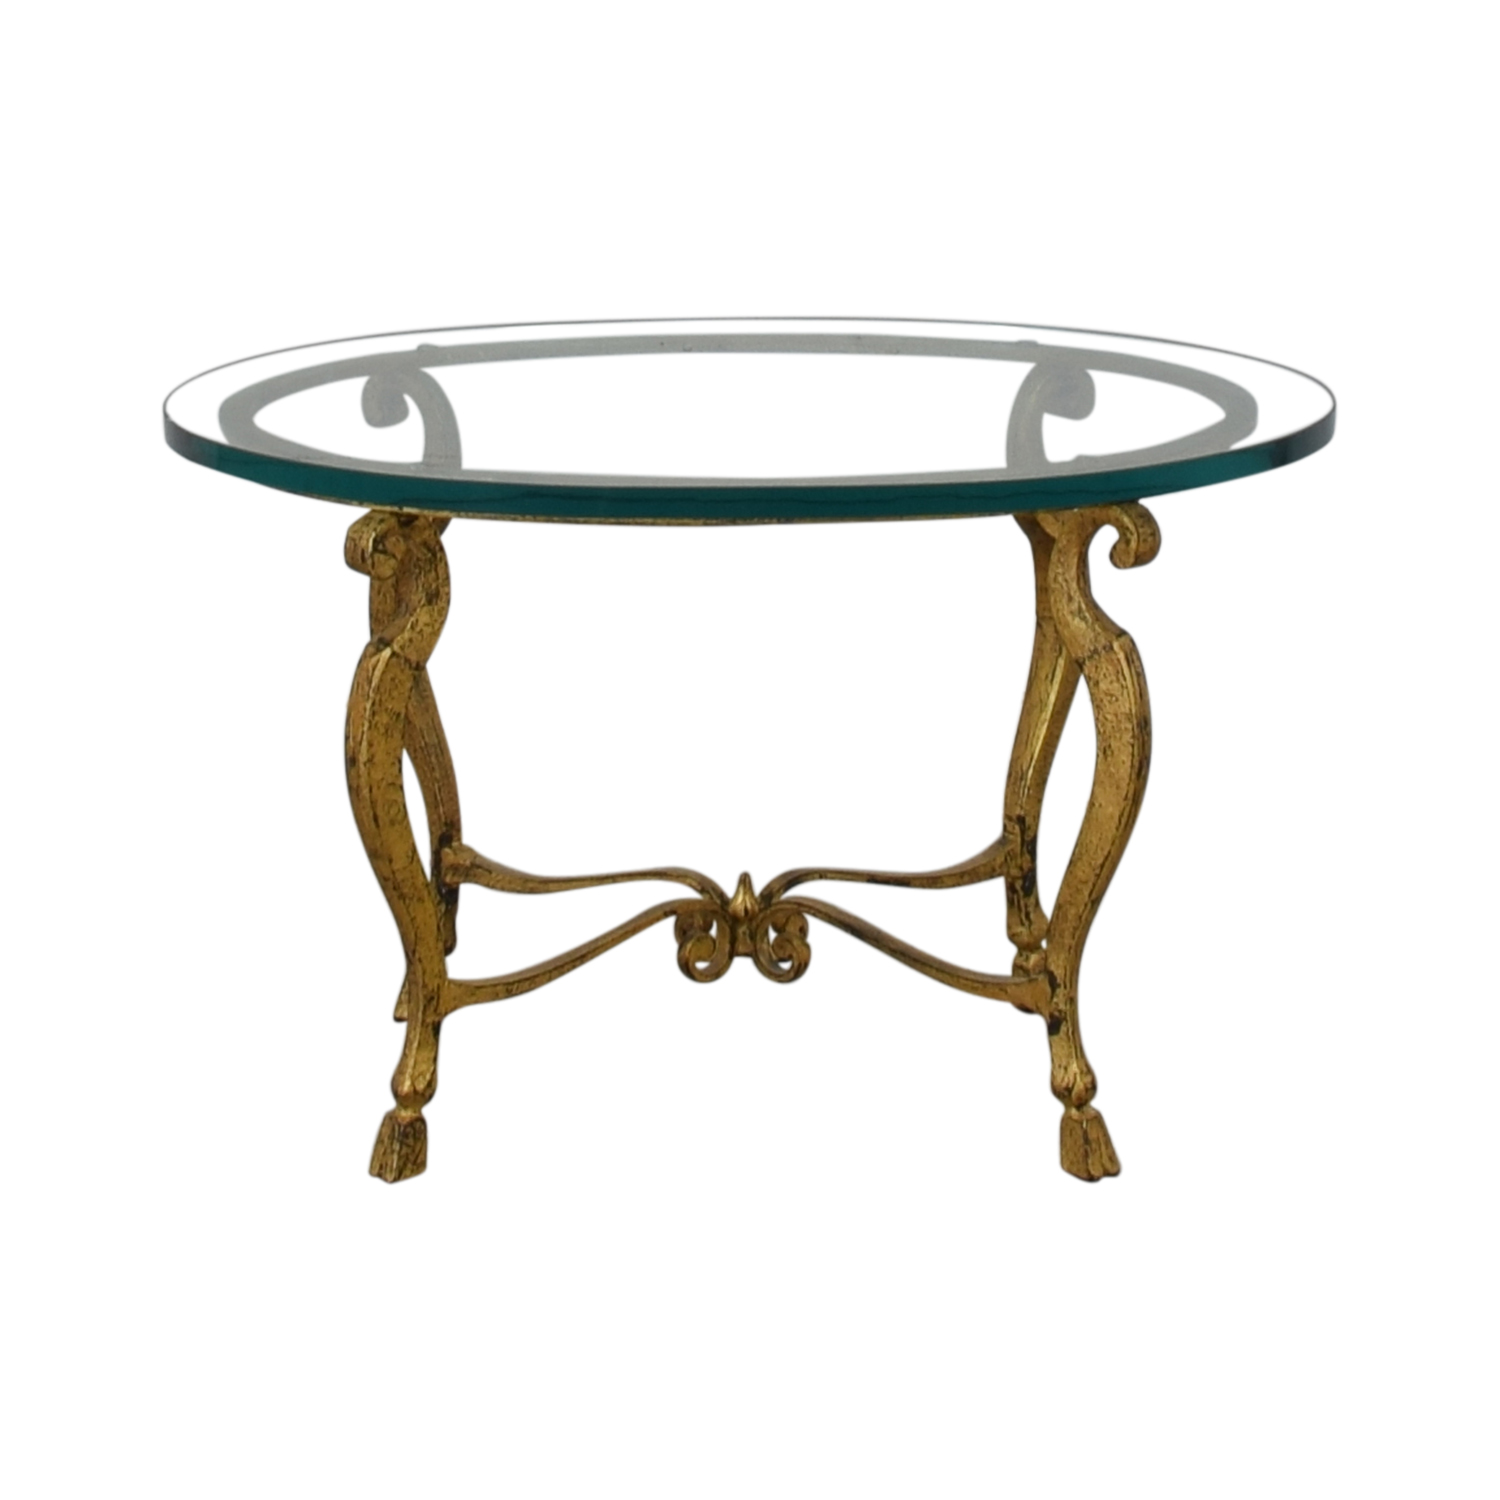 off distressed oval bronze base and glass end table tables furniture ethan allen sofa stoney creek coffee couches nightstand dresser turquoise bedside lamps dolphin style dog